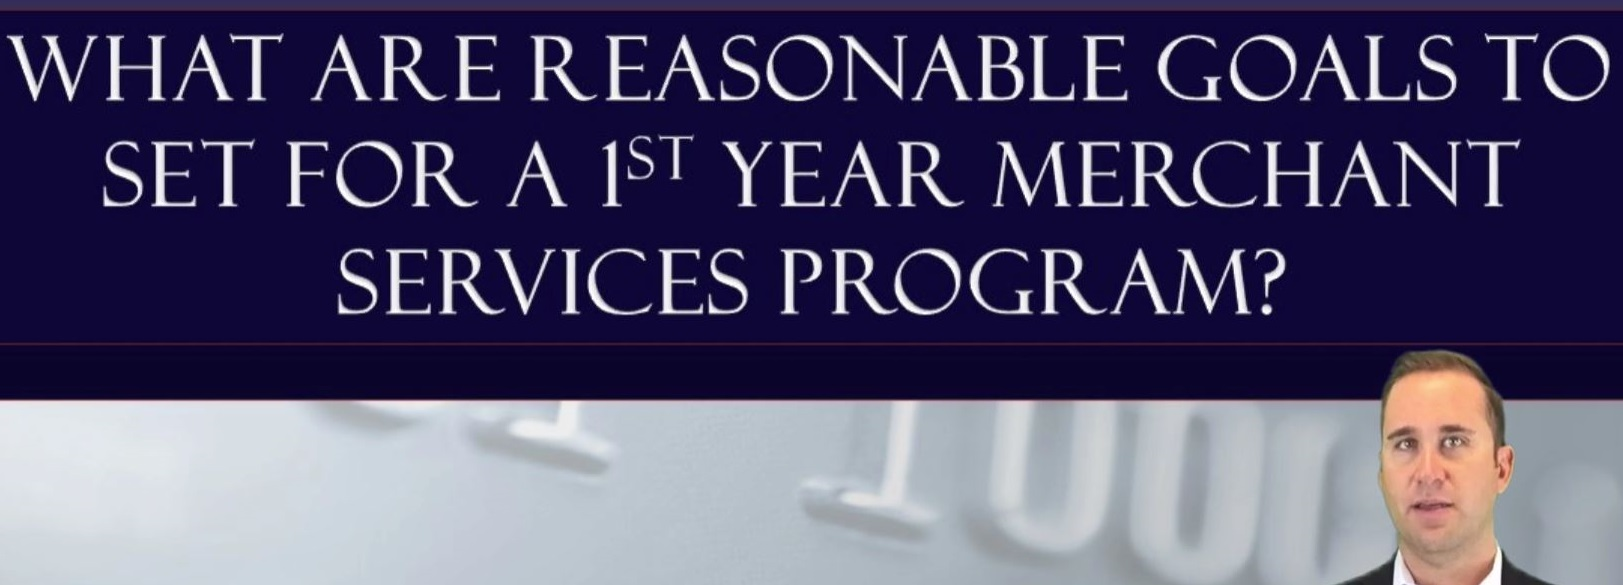 What are Reasonable Goals to Set for a 1st year Merchant Services Program?